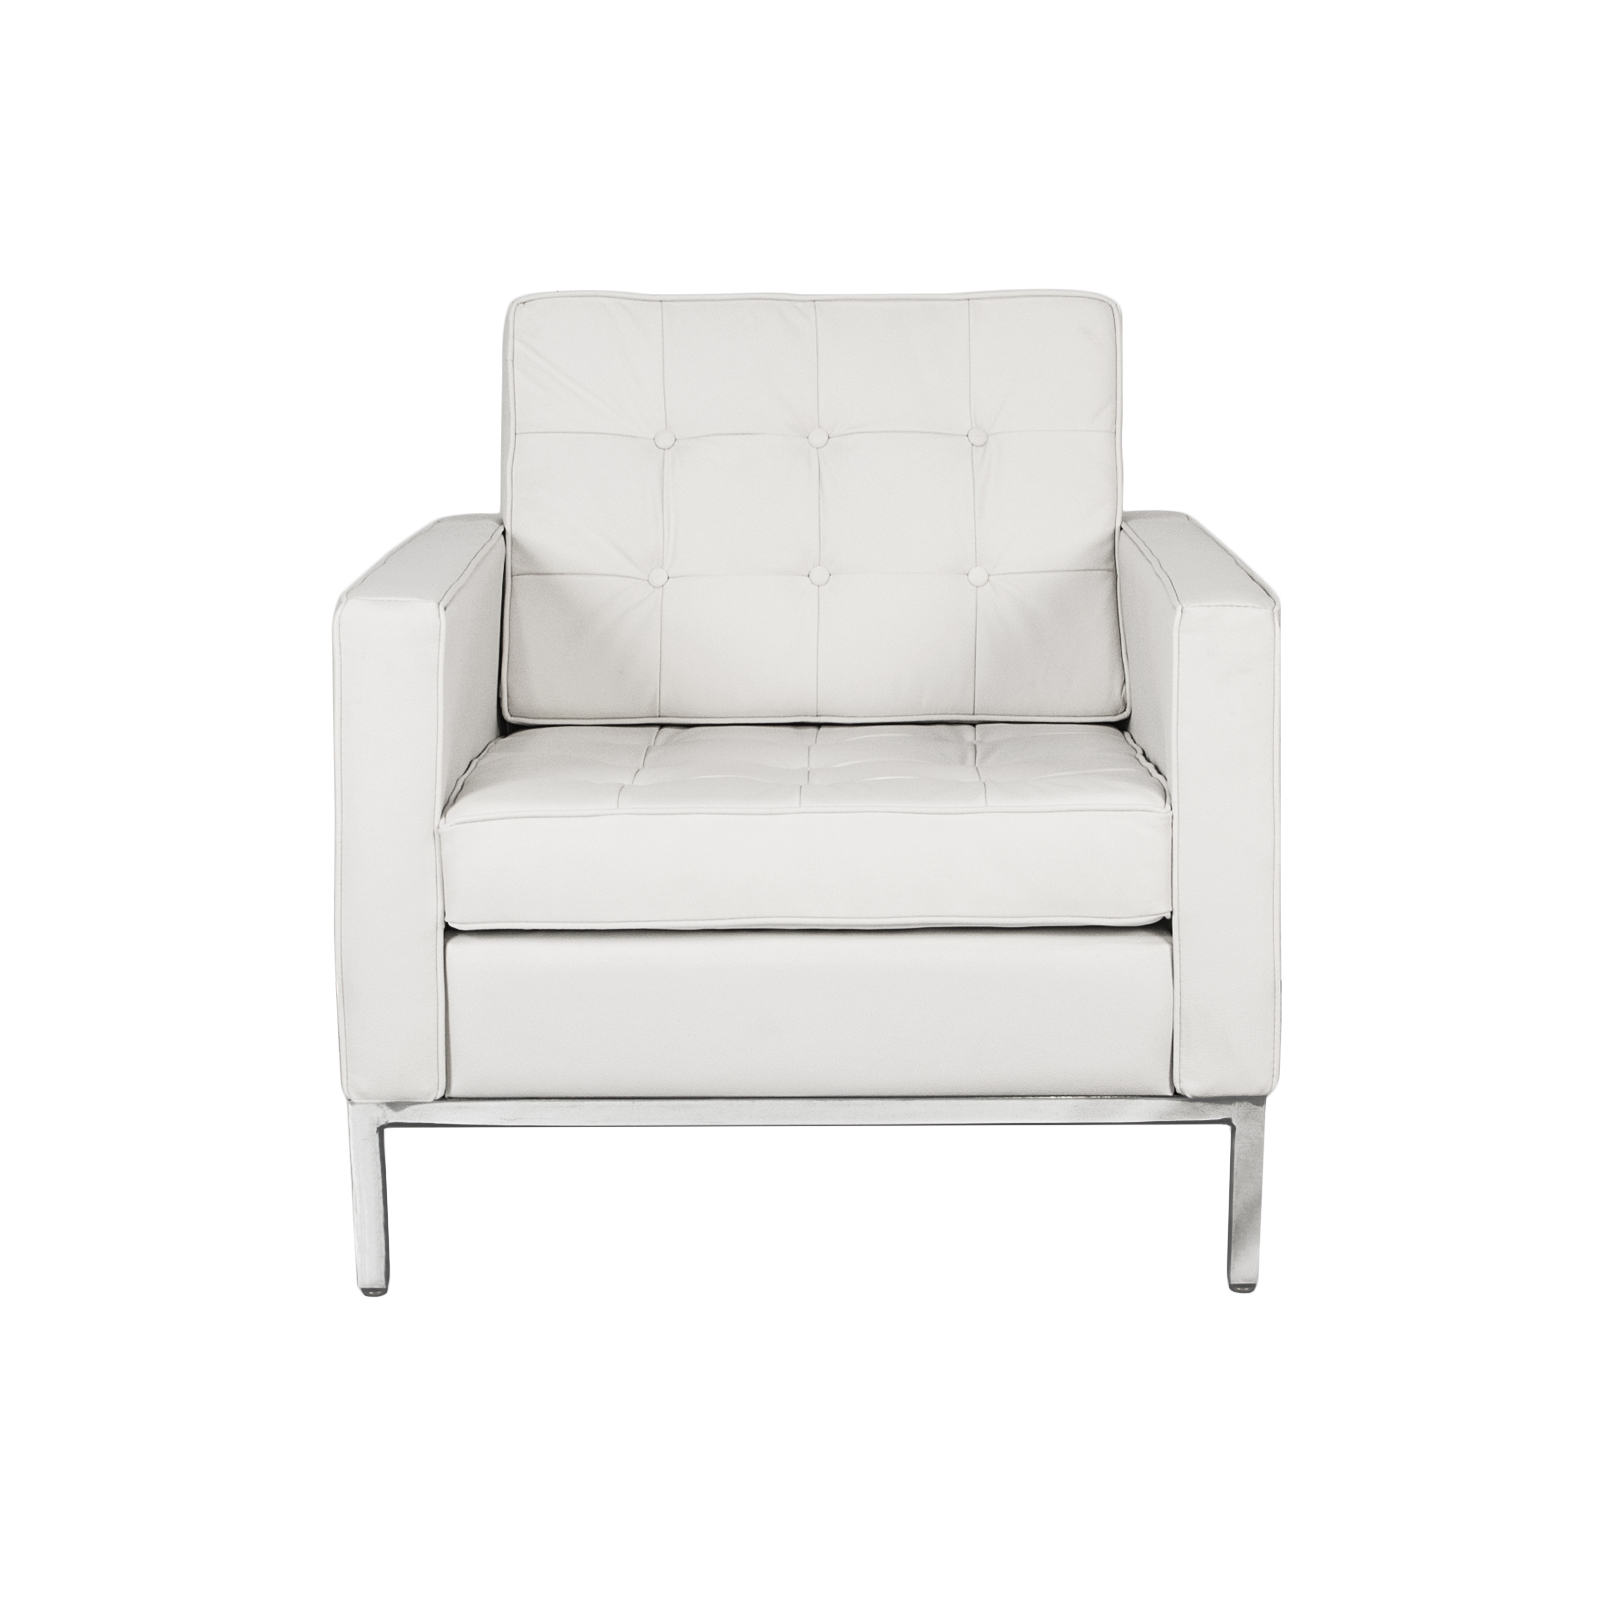 White Club Chair Florence Knoll Lounge Chair Rentals Event Furniture